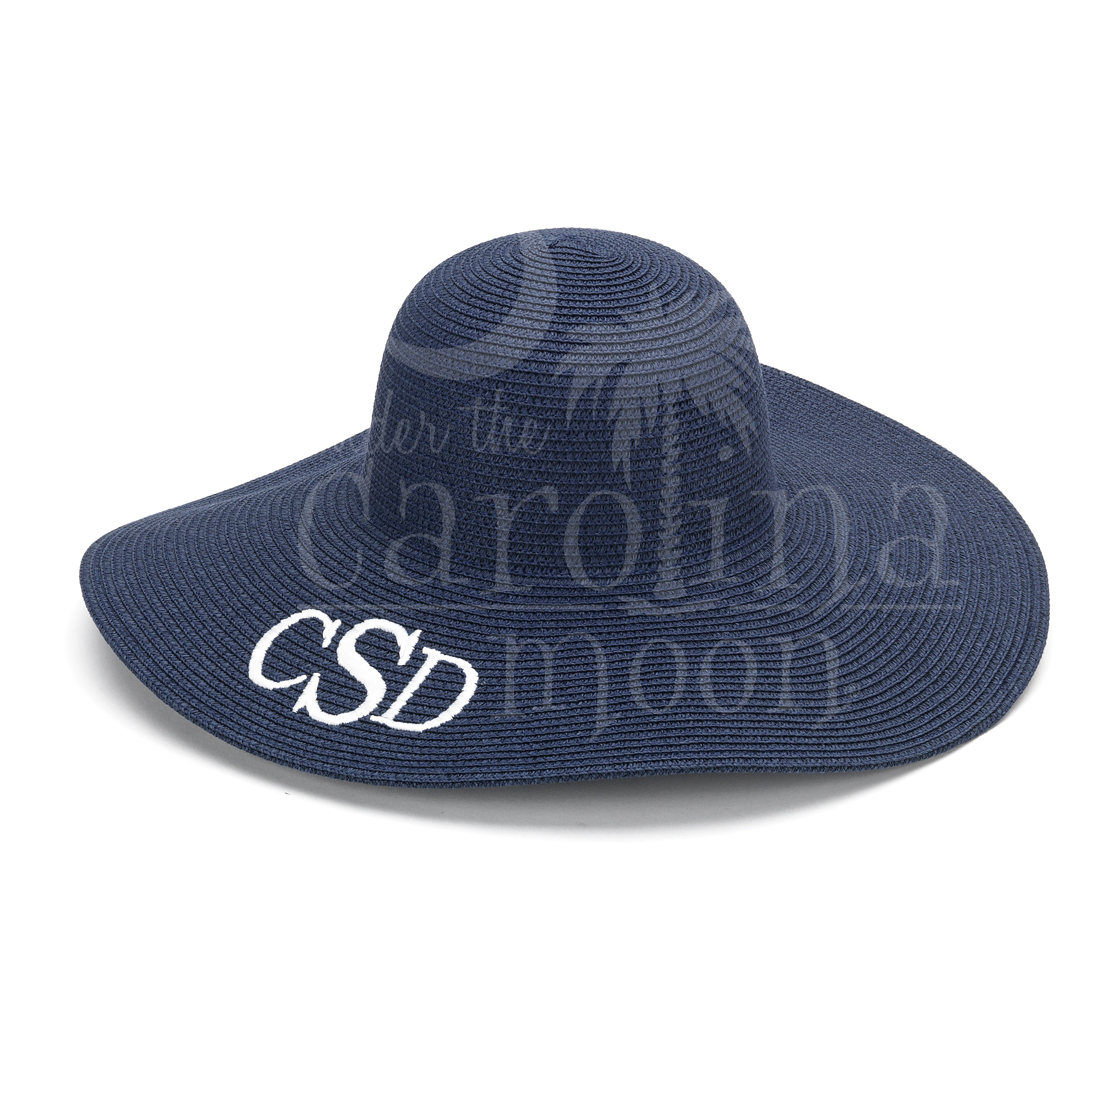 Preppy Sun Hat Navy